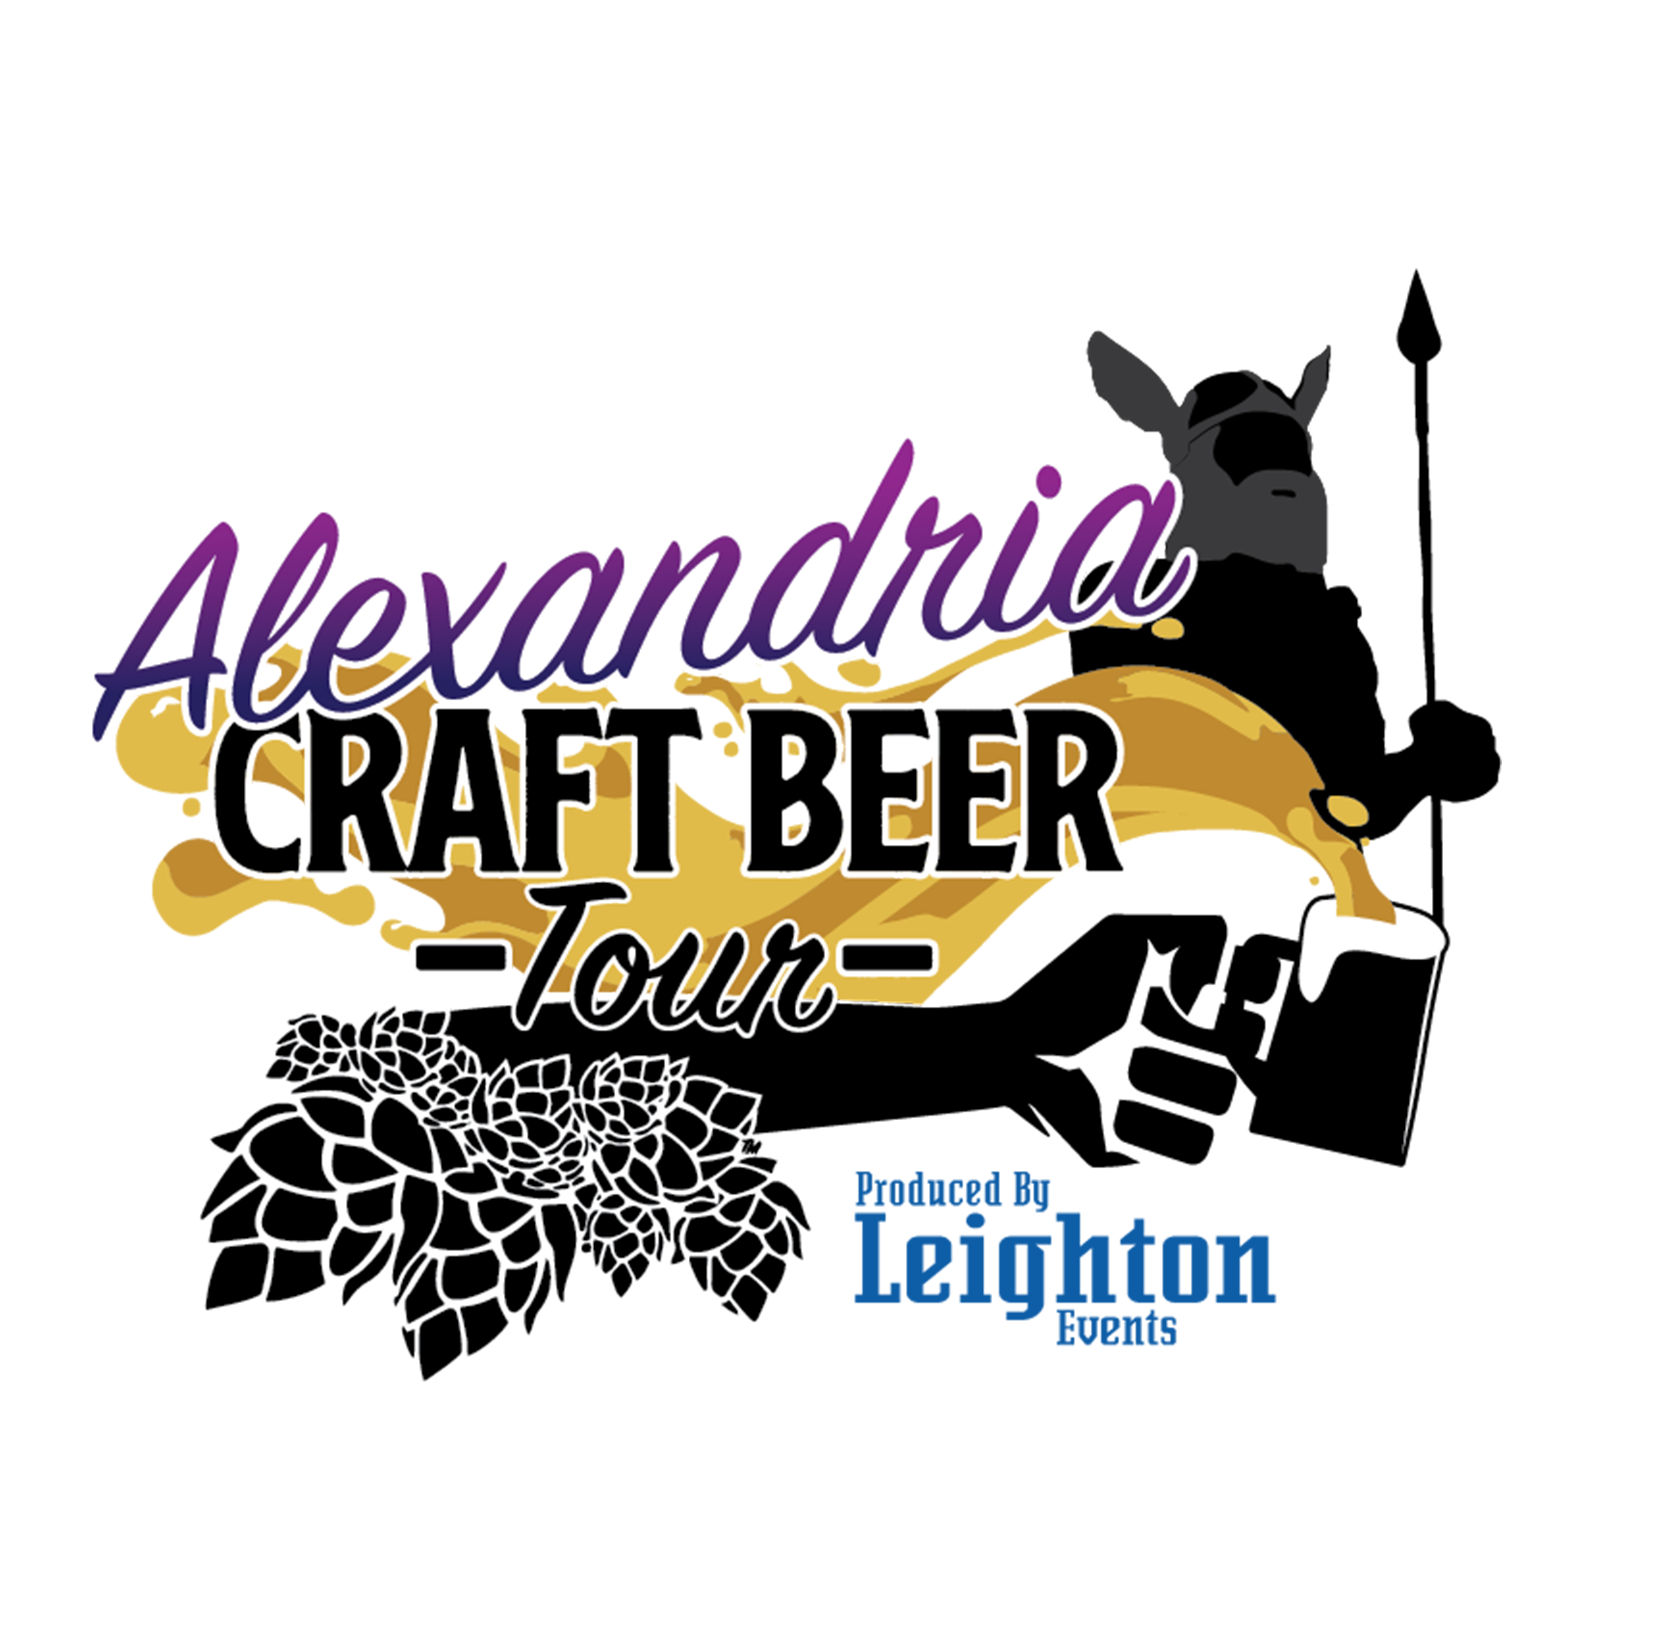 Alexandria Craft Beer Tour